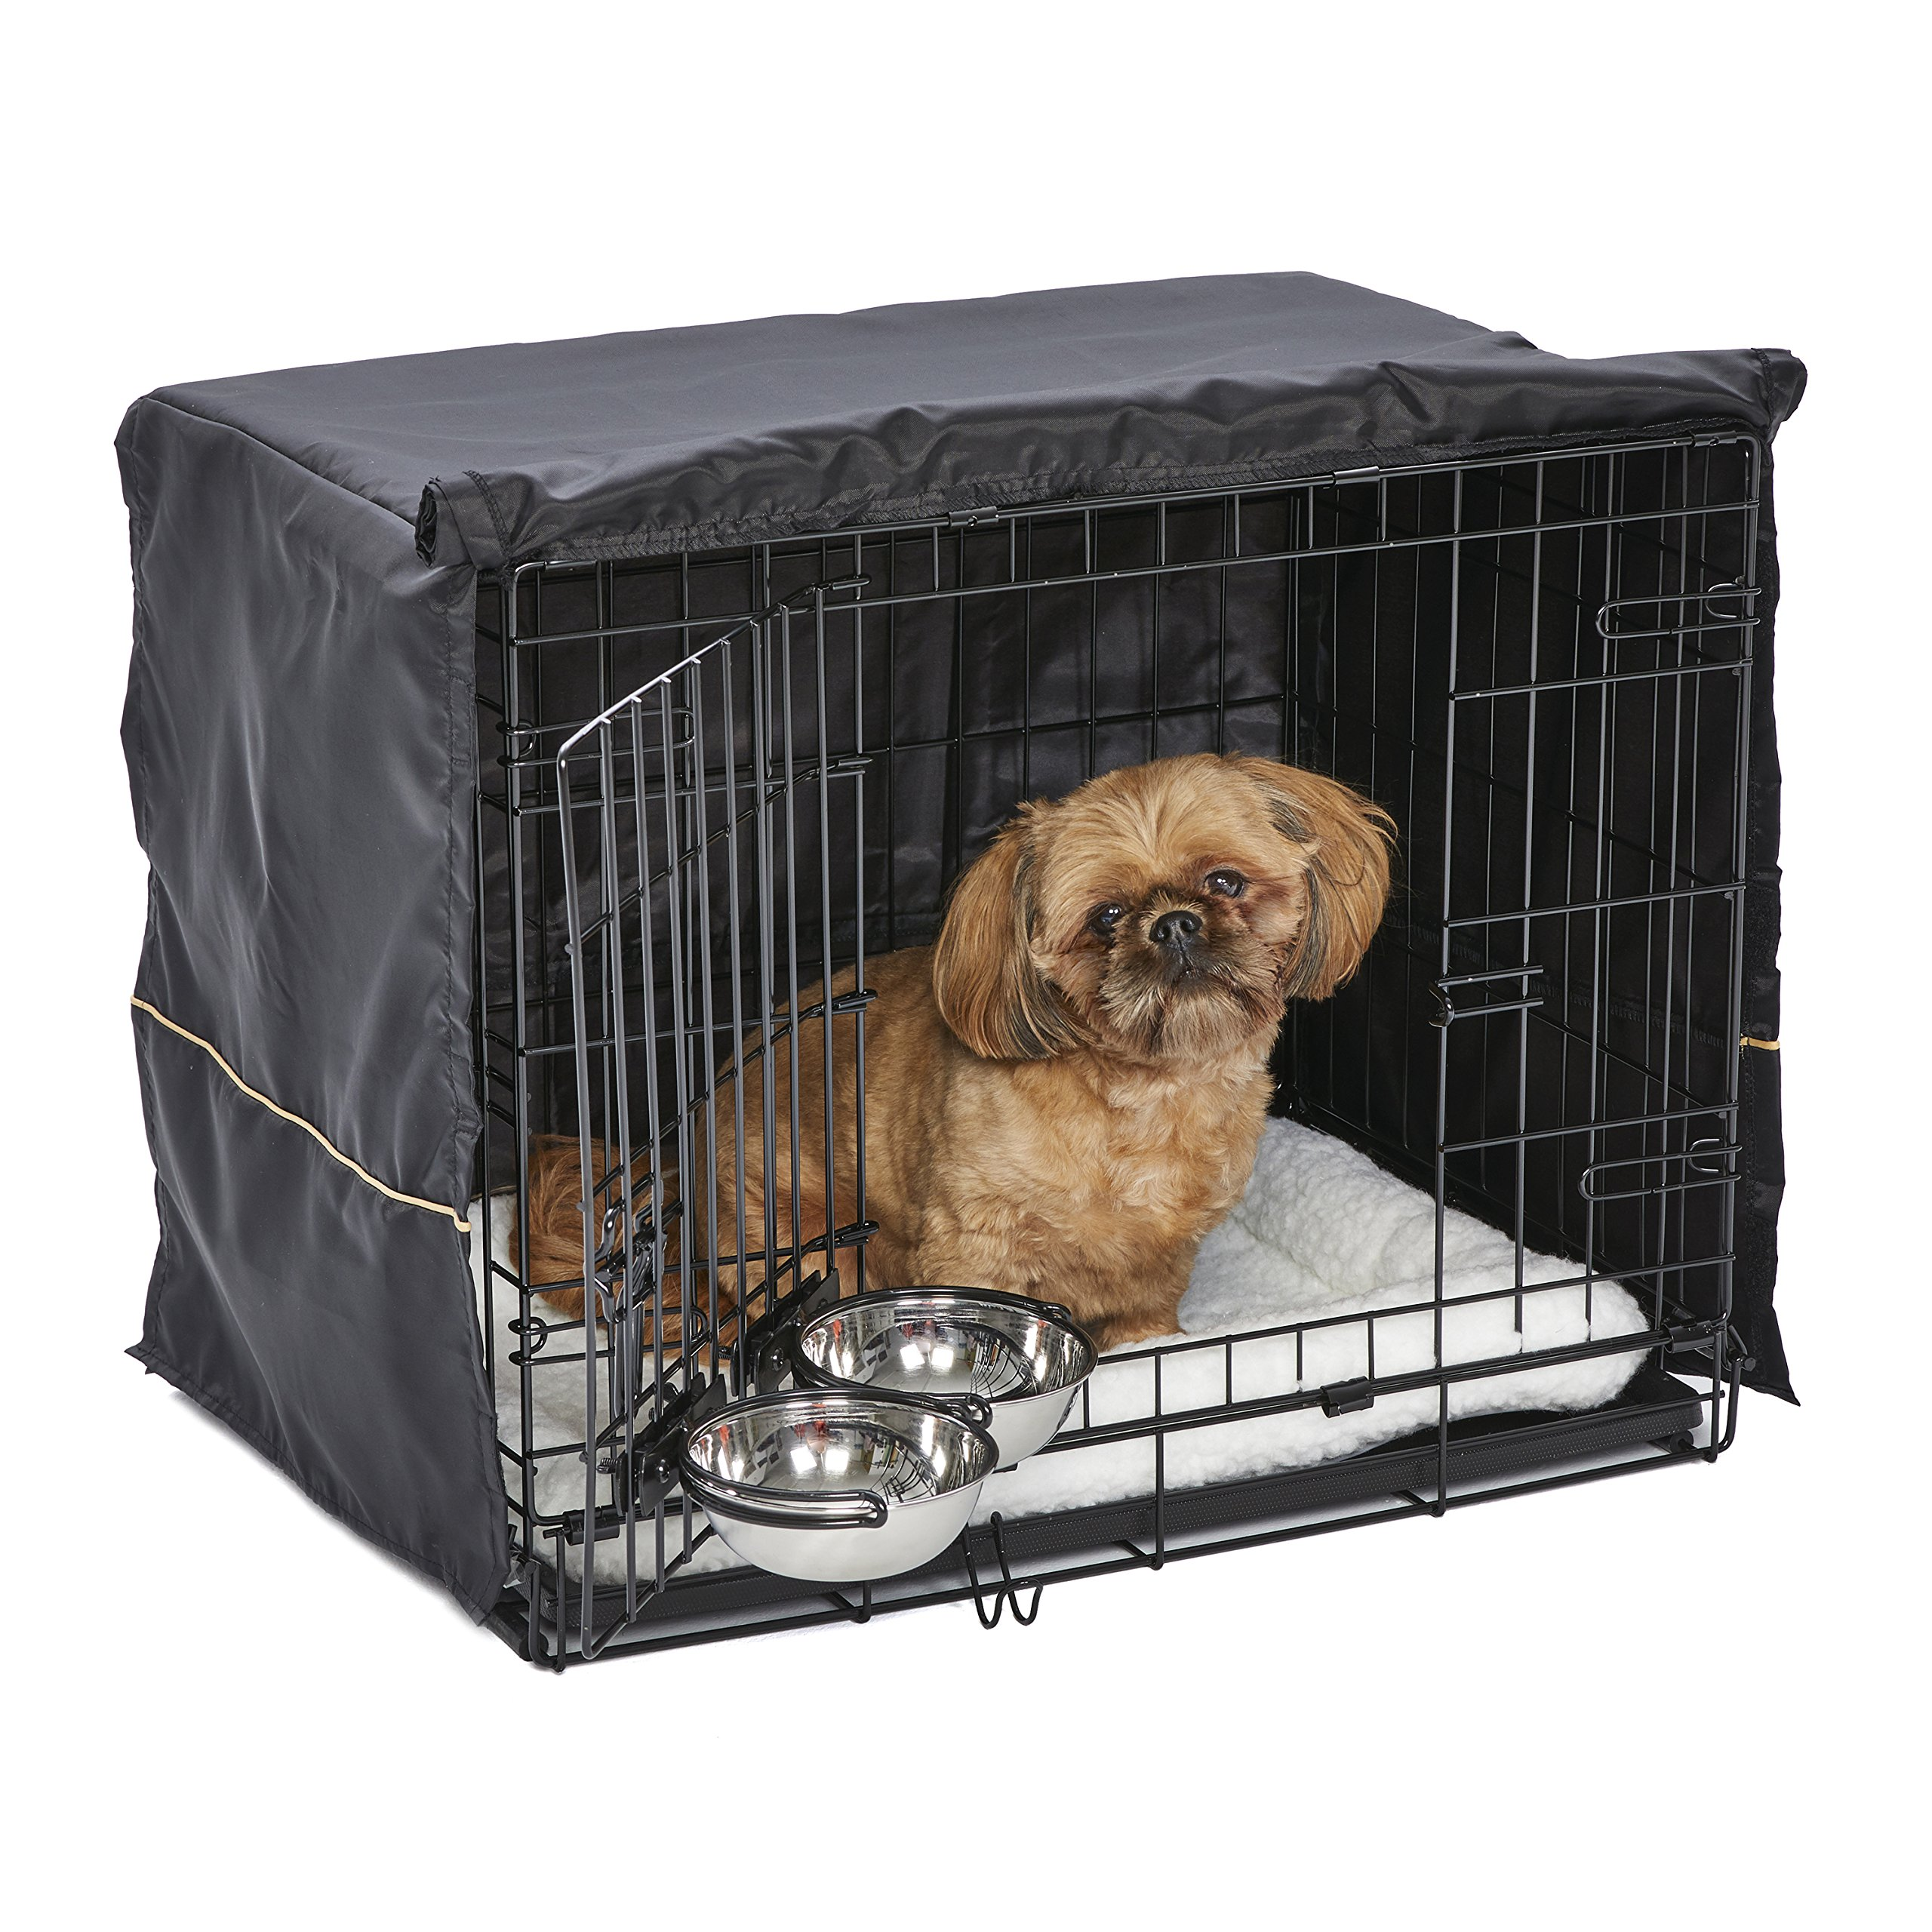 MidWest Homes for Pets Small Dog Crate Starter Kit | One 2-Door iCrate, Pet Bed, Crate Cover & 2 Pet Bowls | 24-Inch Ideal for Small Dog Breeds by MidWest Homes for Pets (Image #1)